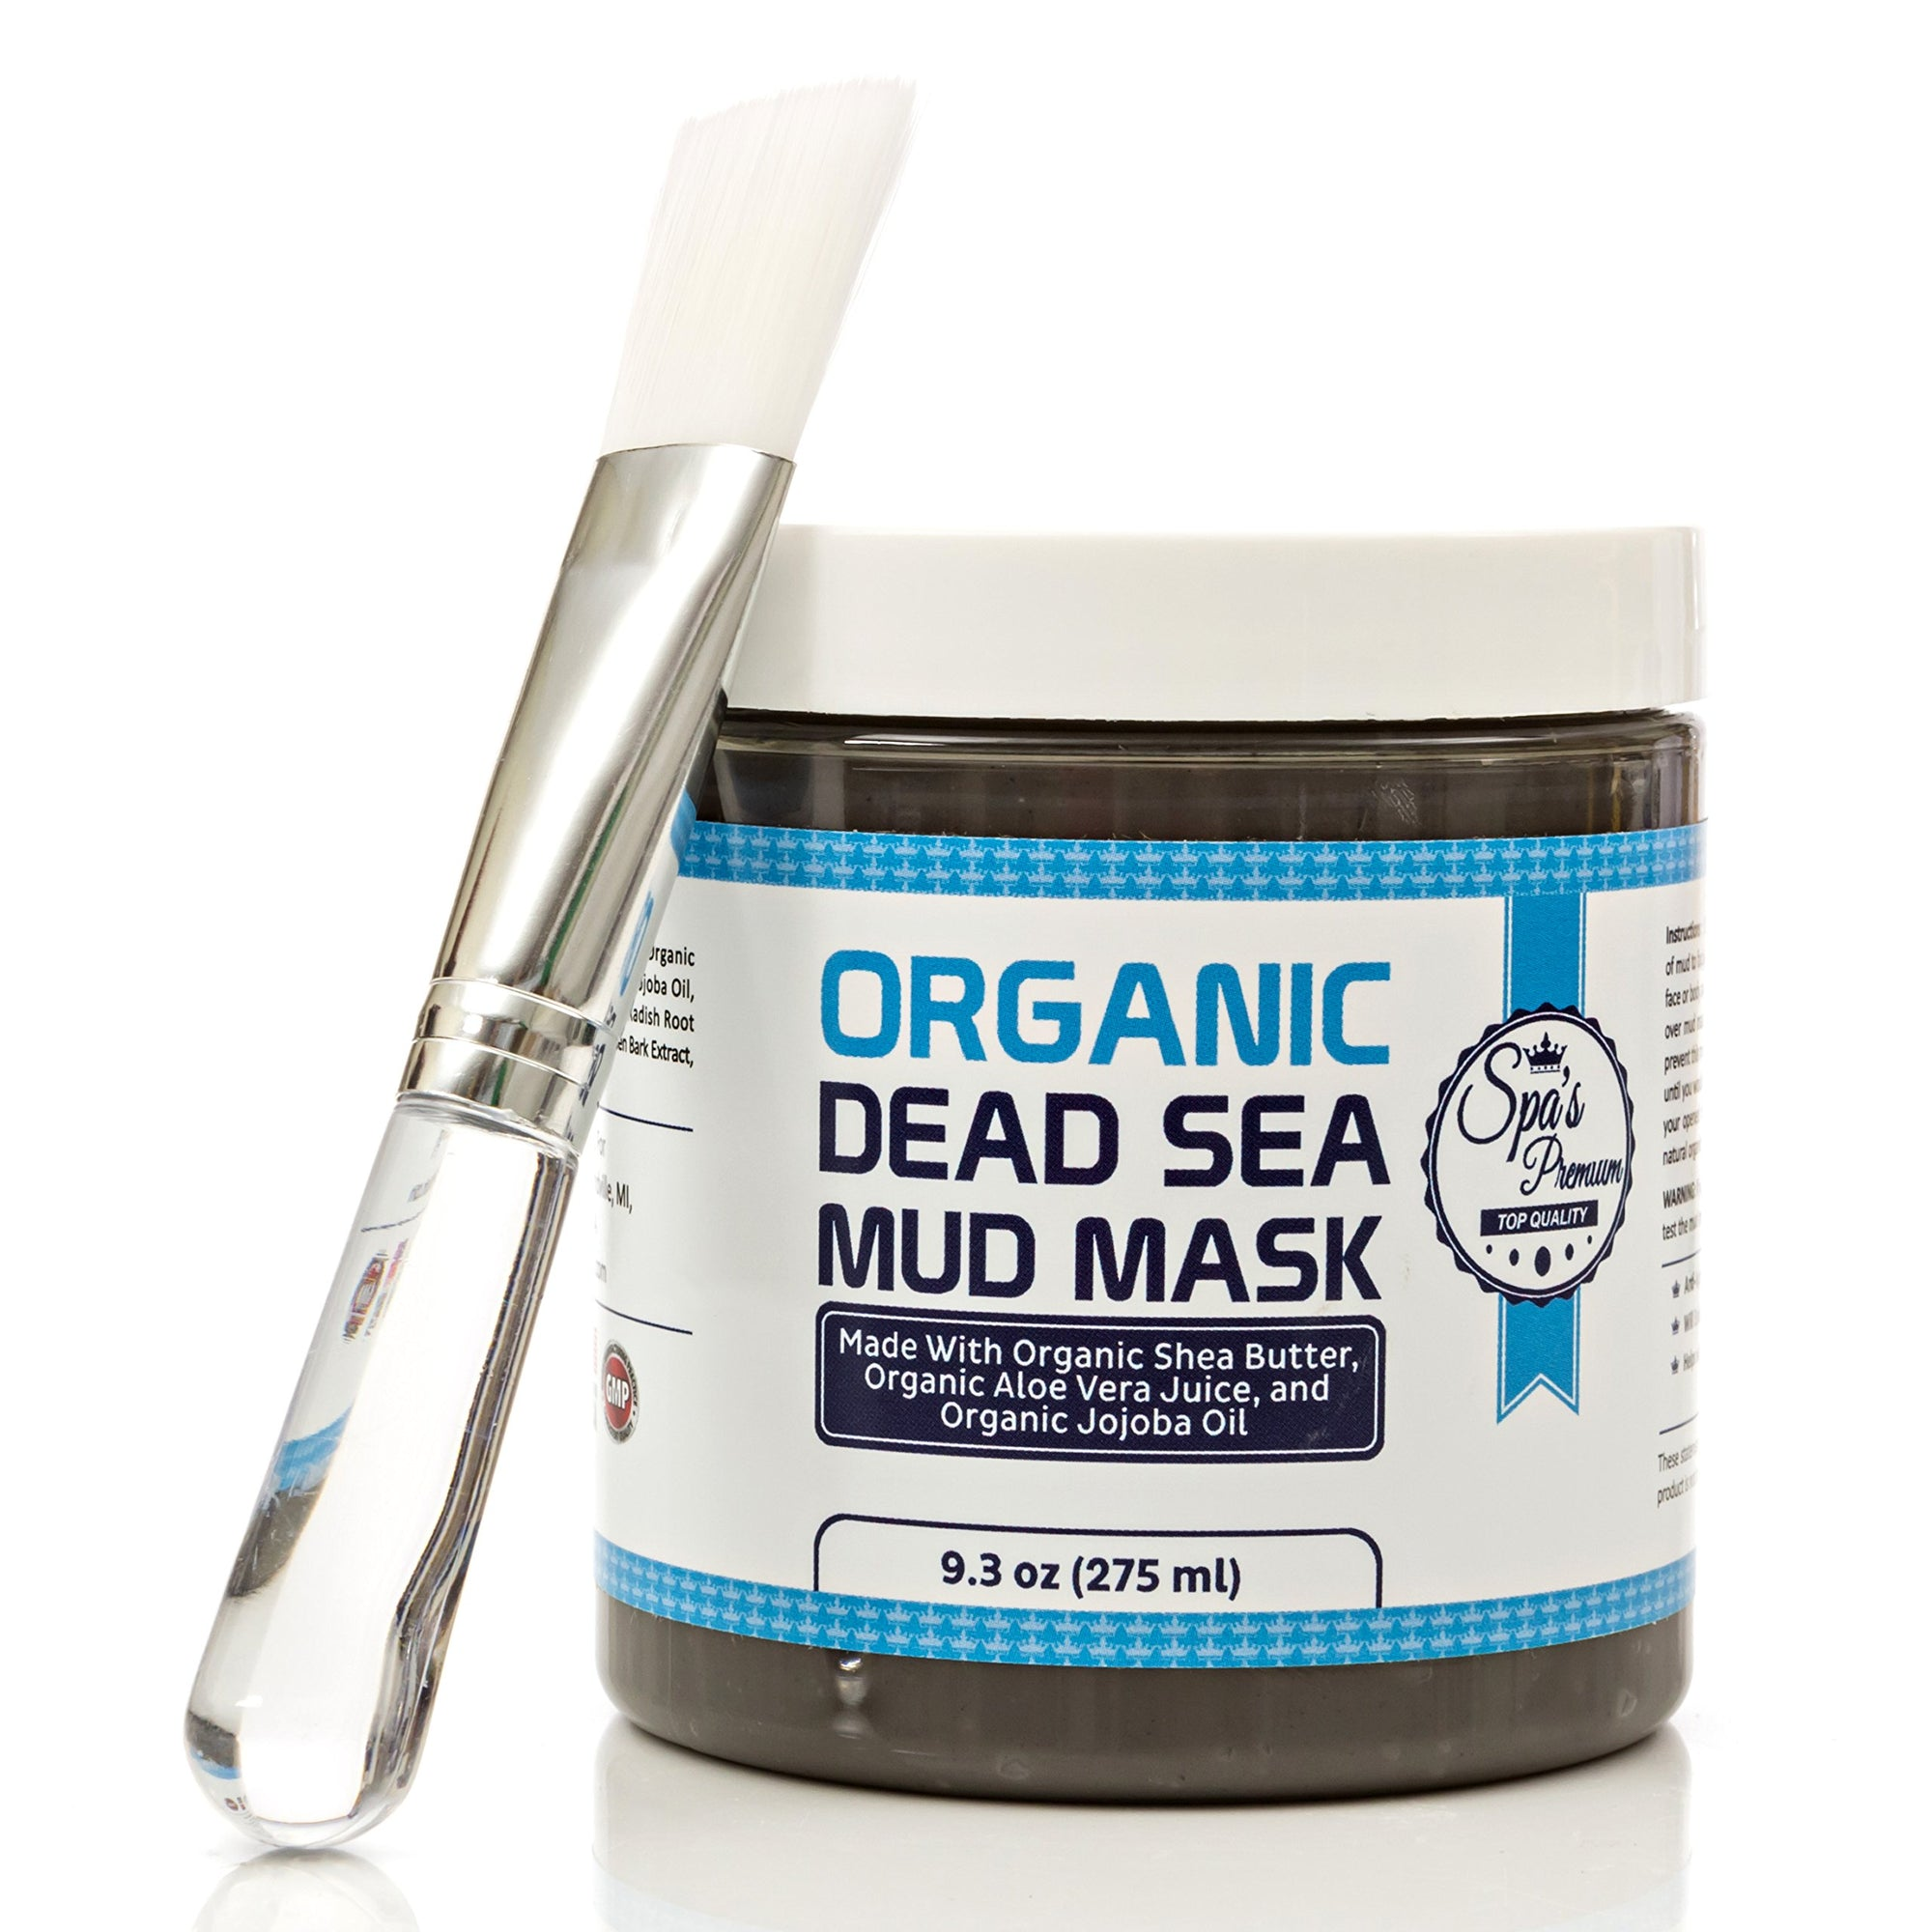 Dead Sea Mud Mask & Free Face Brush - HUGE Jar - Clears Acne - Anti-Aging - Exfoliate Skin - Moisturize - Aloe Vera Juice - Jojoba - Sunflower - Hickory Bark Extract - Calendula Oil - Shea Butter - White Elephant Gift